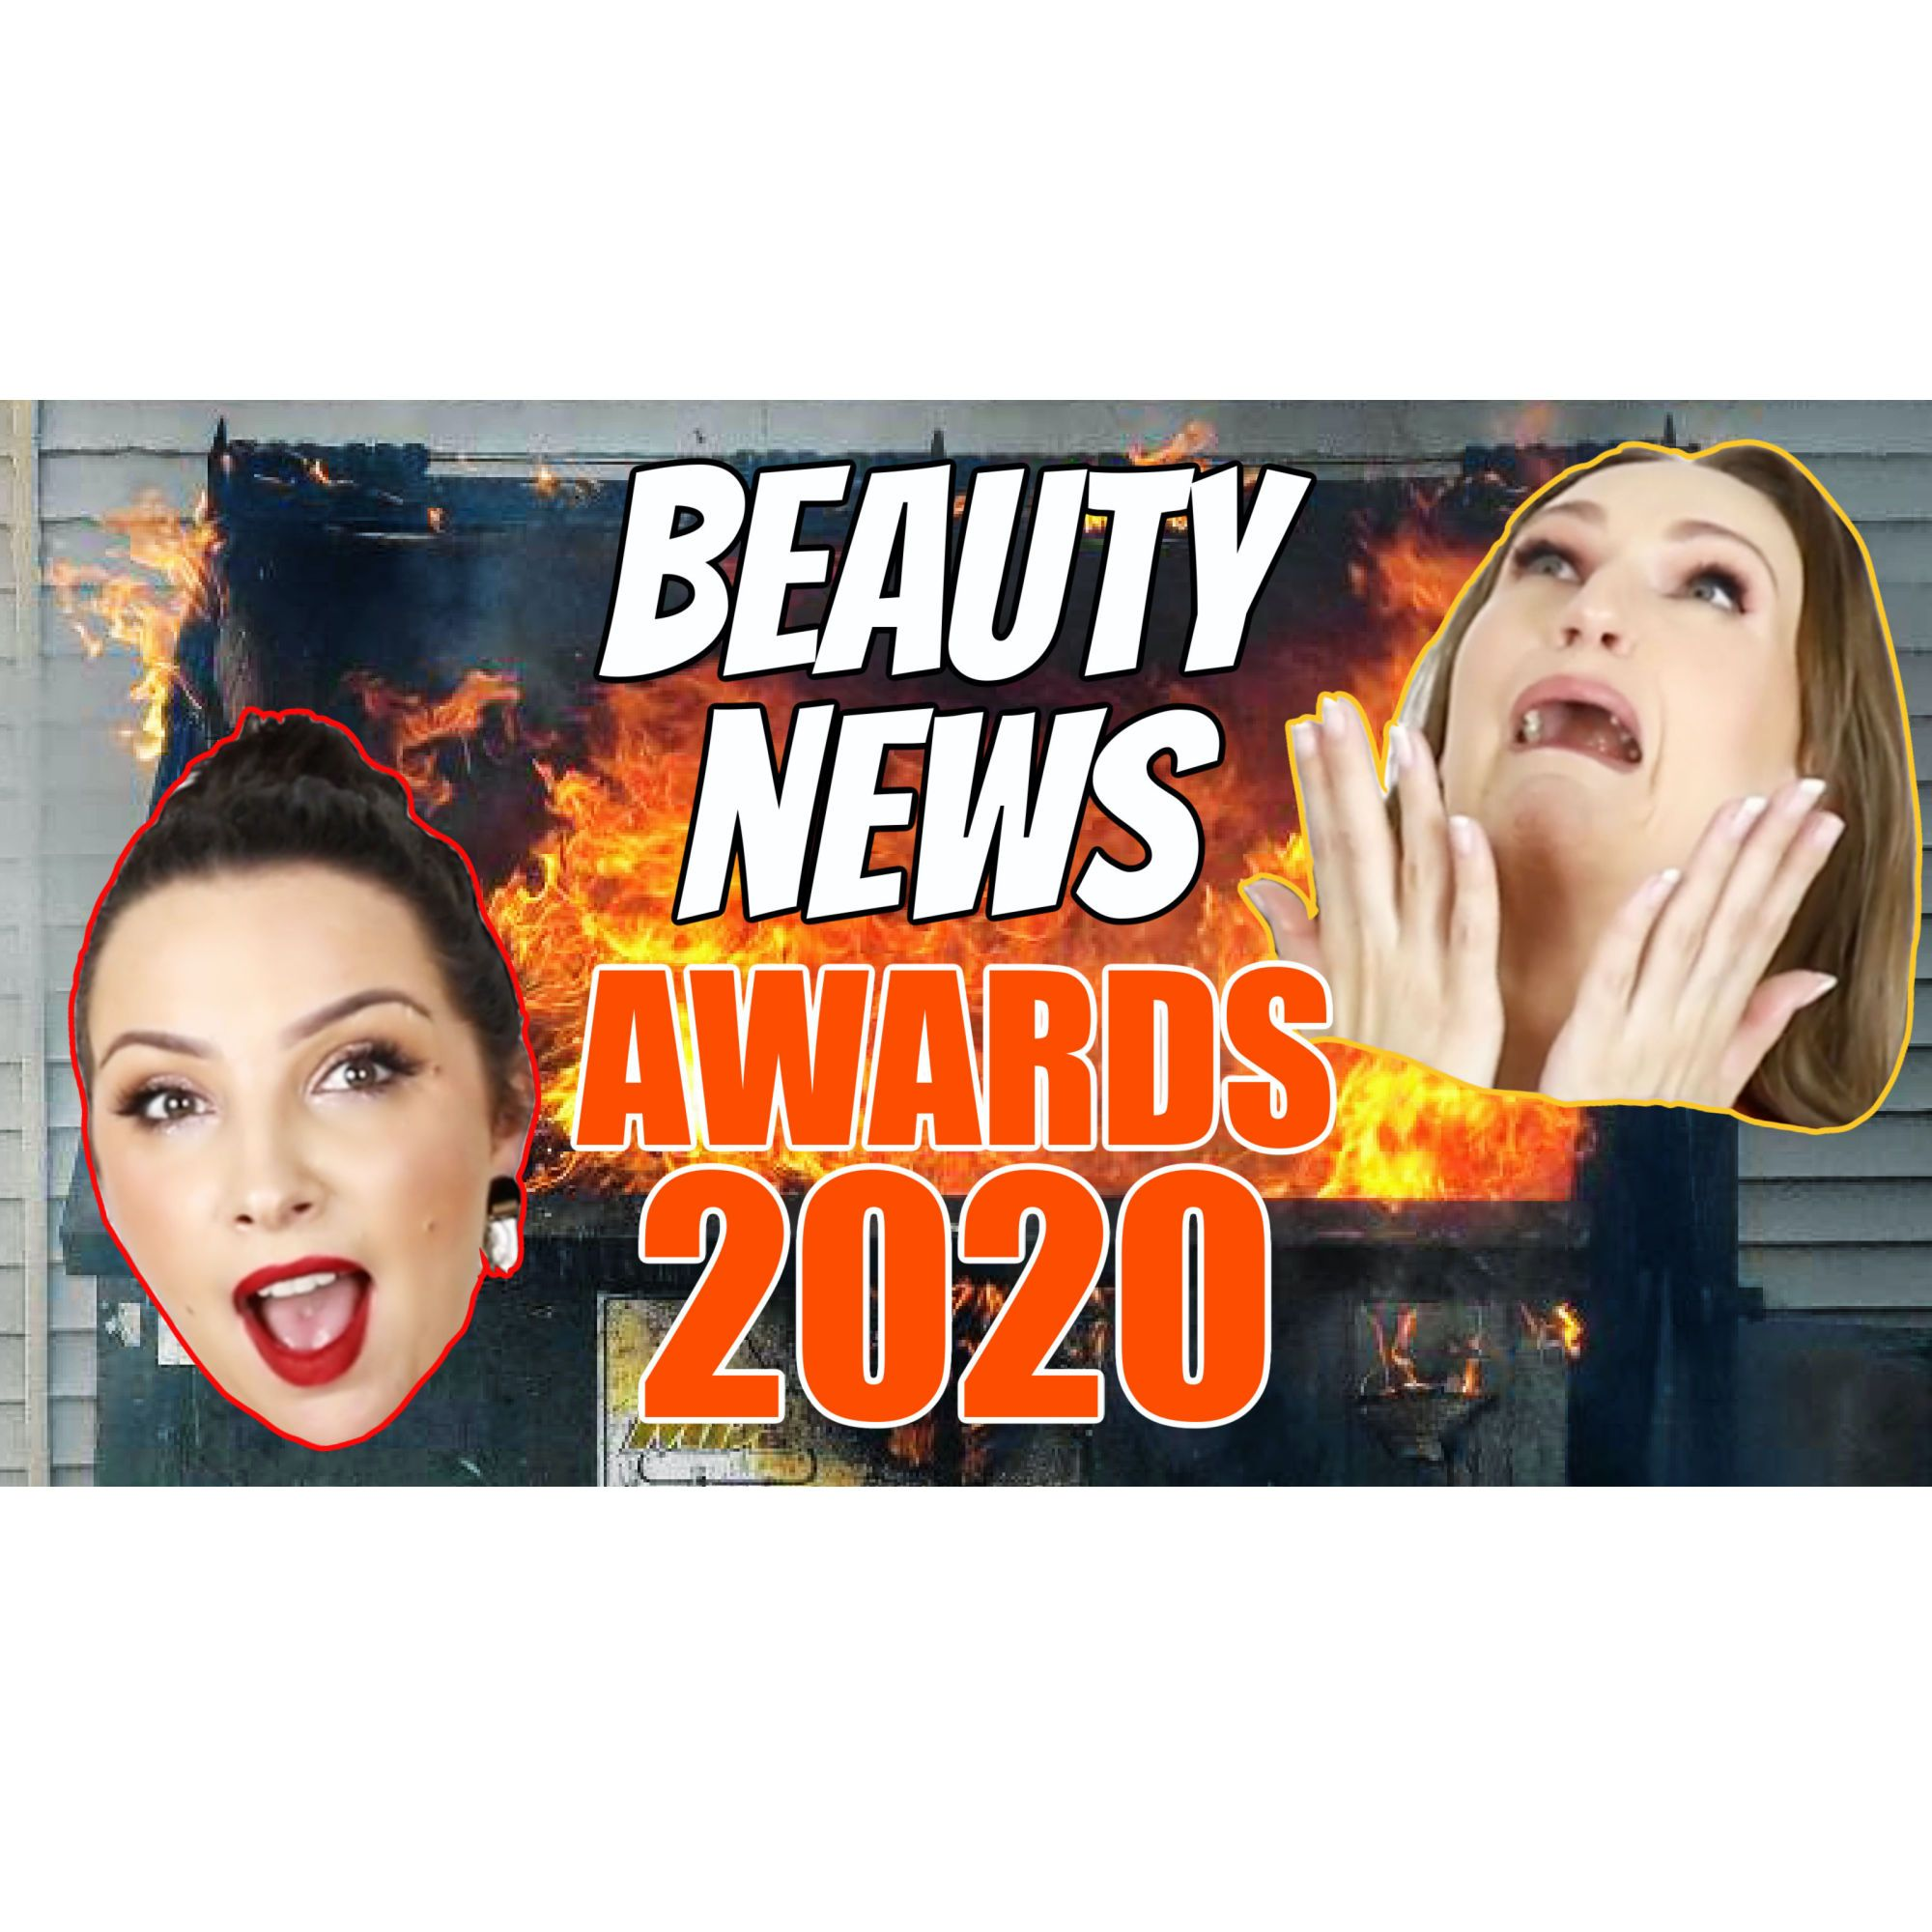 The Fifth Annual BEAUTY NEWS Awards 2020